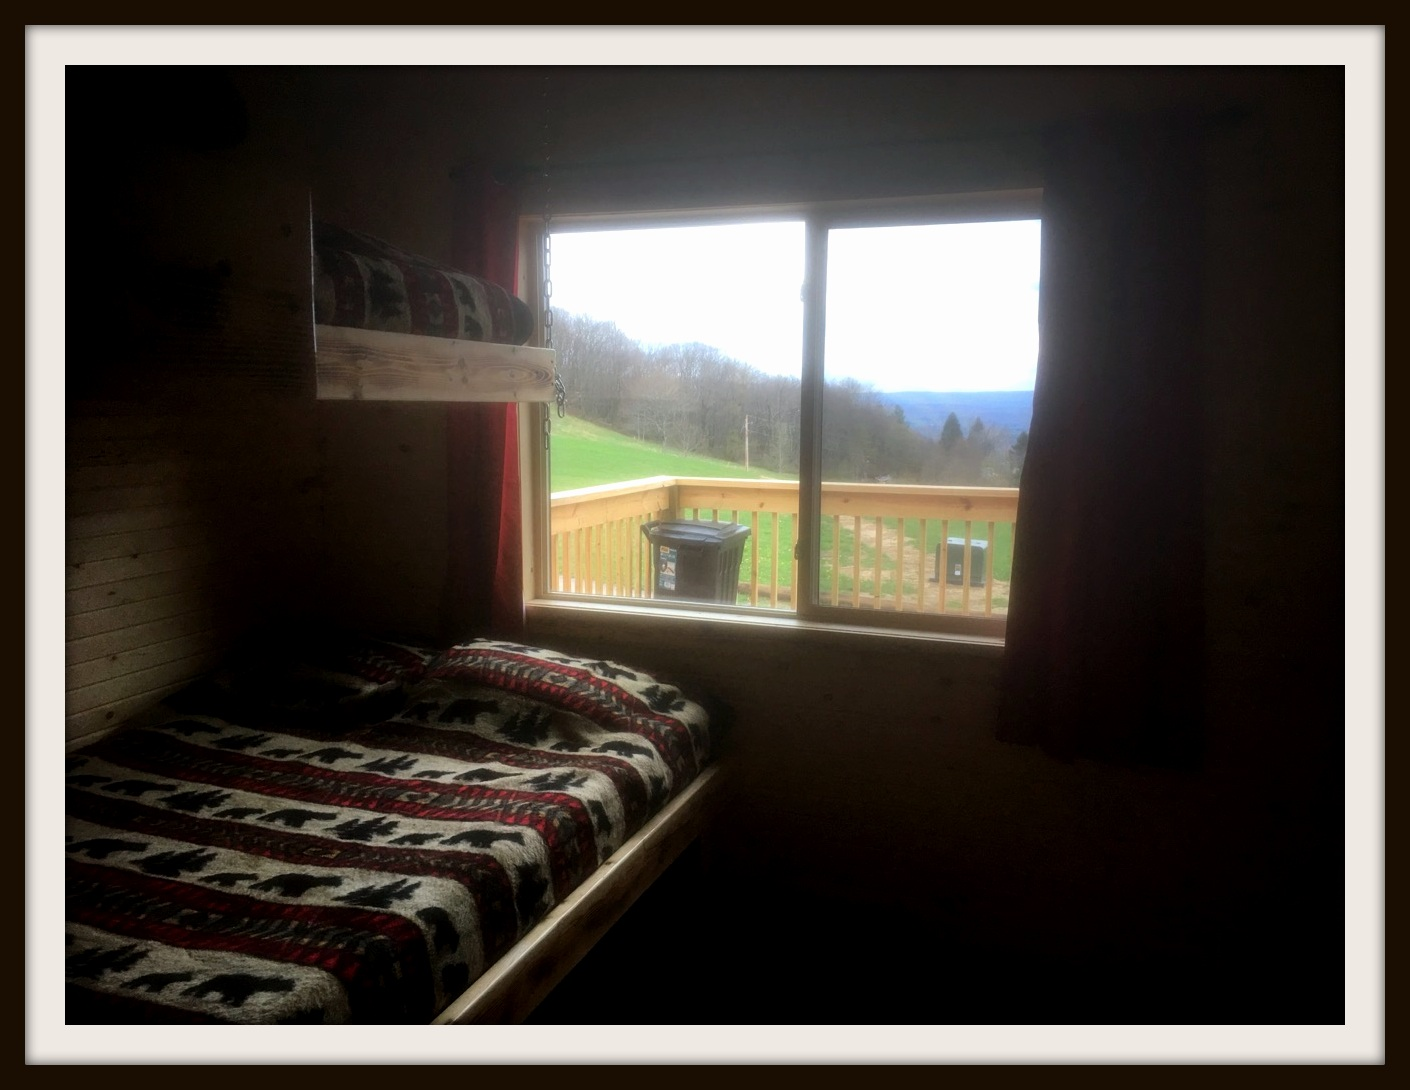 Bunk Room Window